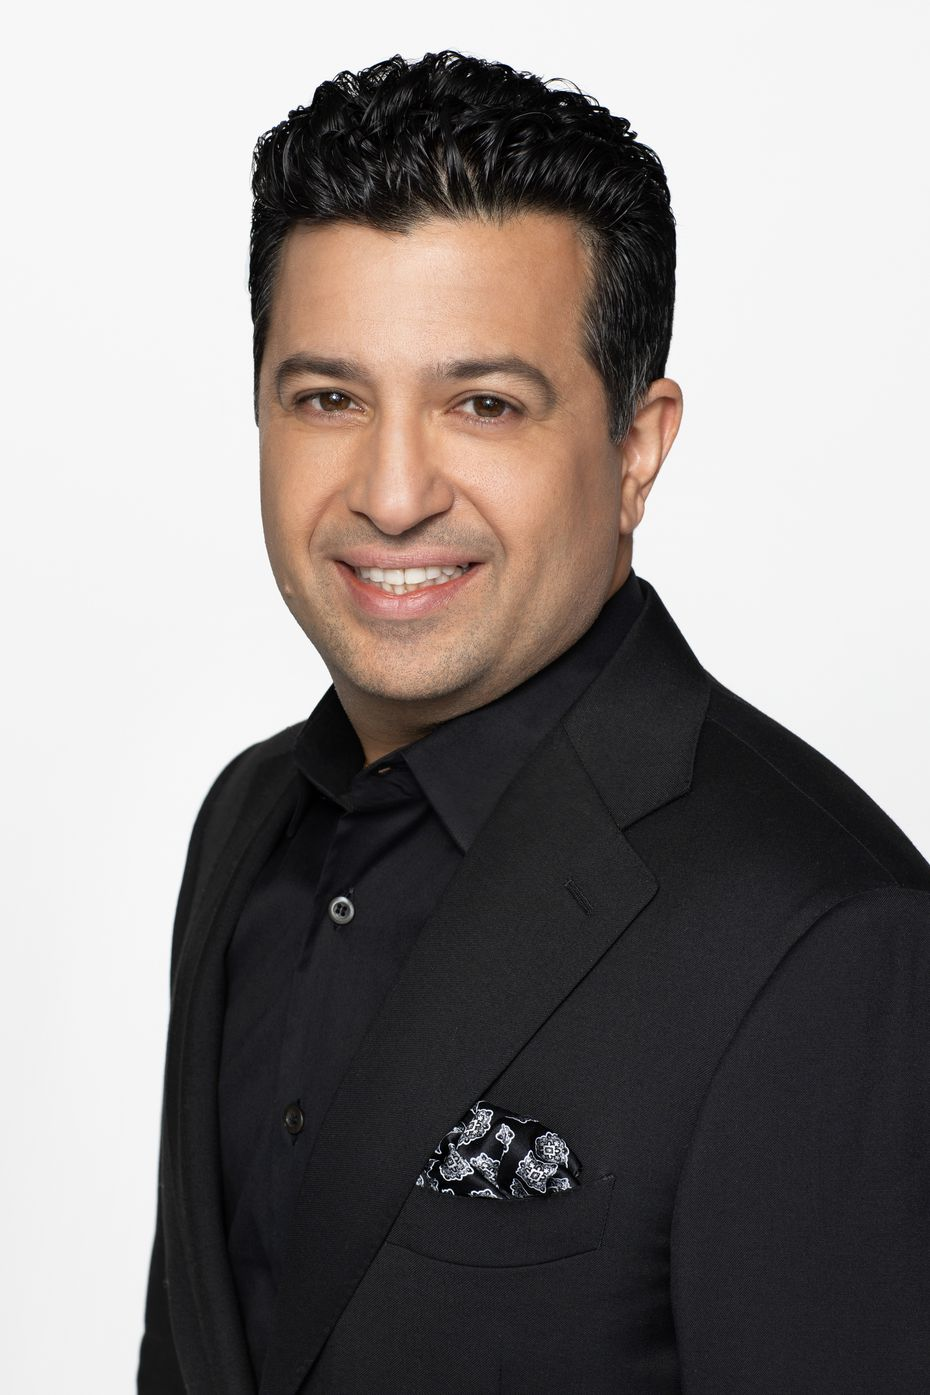 Satish Malhotra will become CEO and president of The Container Store on Feb. 1. He comes to the Coppell-based retailer from Sephora, where he's held several leadership jobs since the French beauty retailer started to expand into the U.S. in 1998.